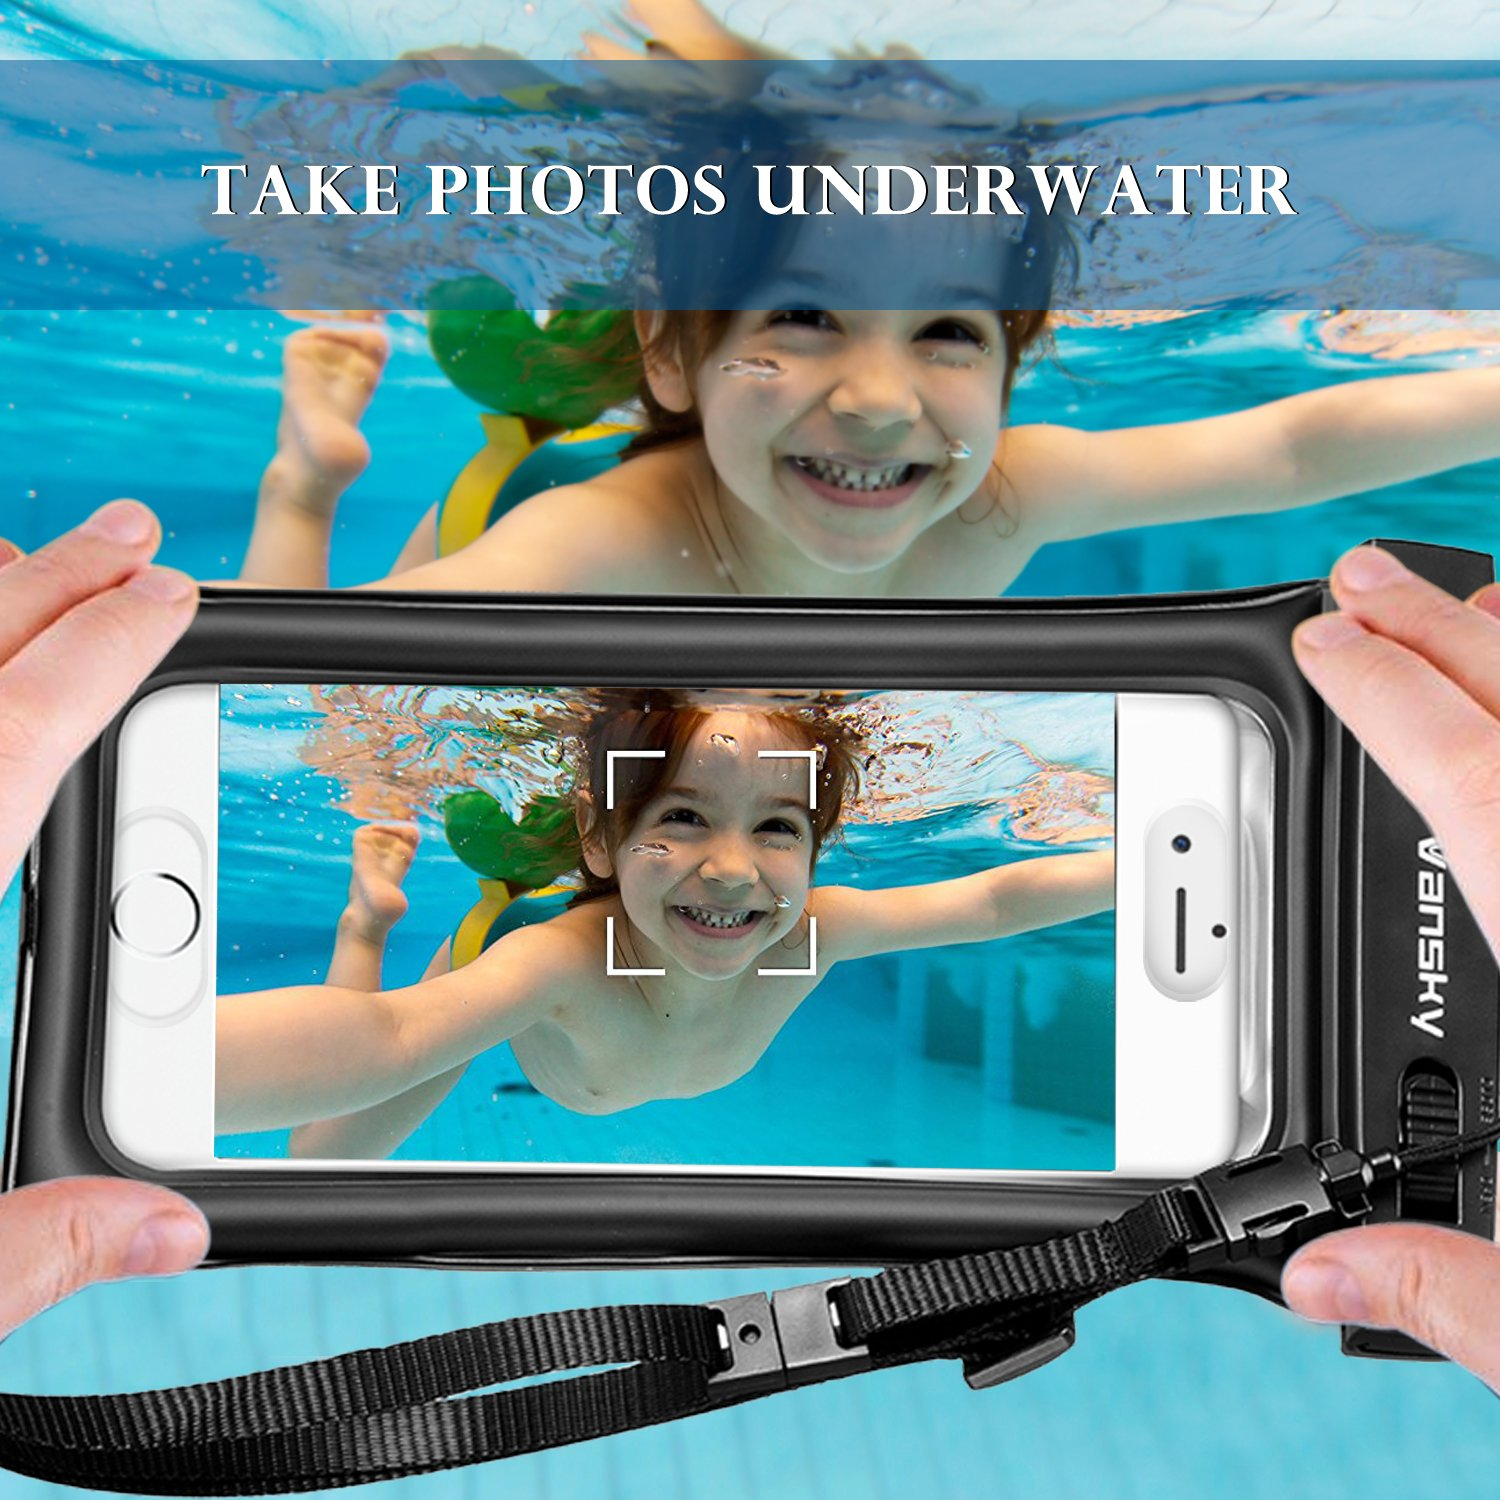 Floatable Waterproof Phone Case, Vansky Waterproof Phone Pouch Dry Bag with Armband and Audio Jack for iPhone X, 8 Plus, 8, 7 Plus, 7, 6s, 6, Andriod; TPU Construction IPX8 Certified by Vansky (Image #6)